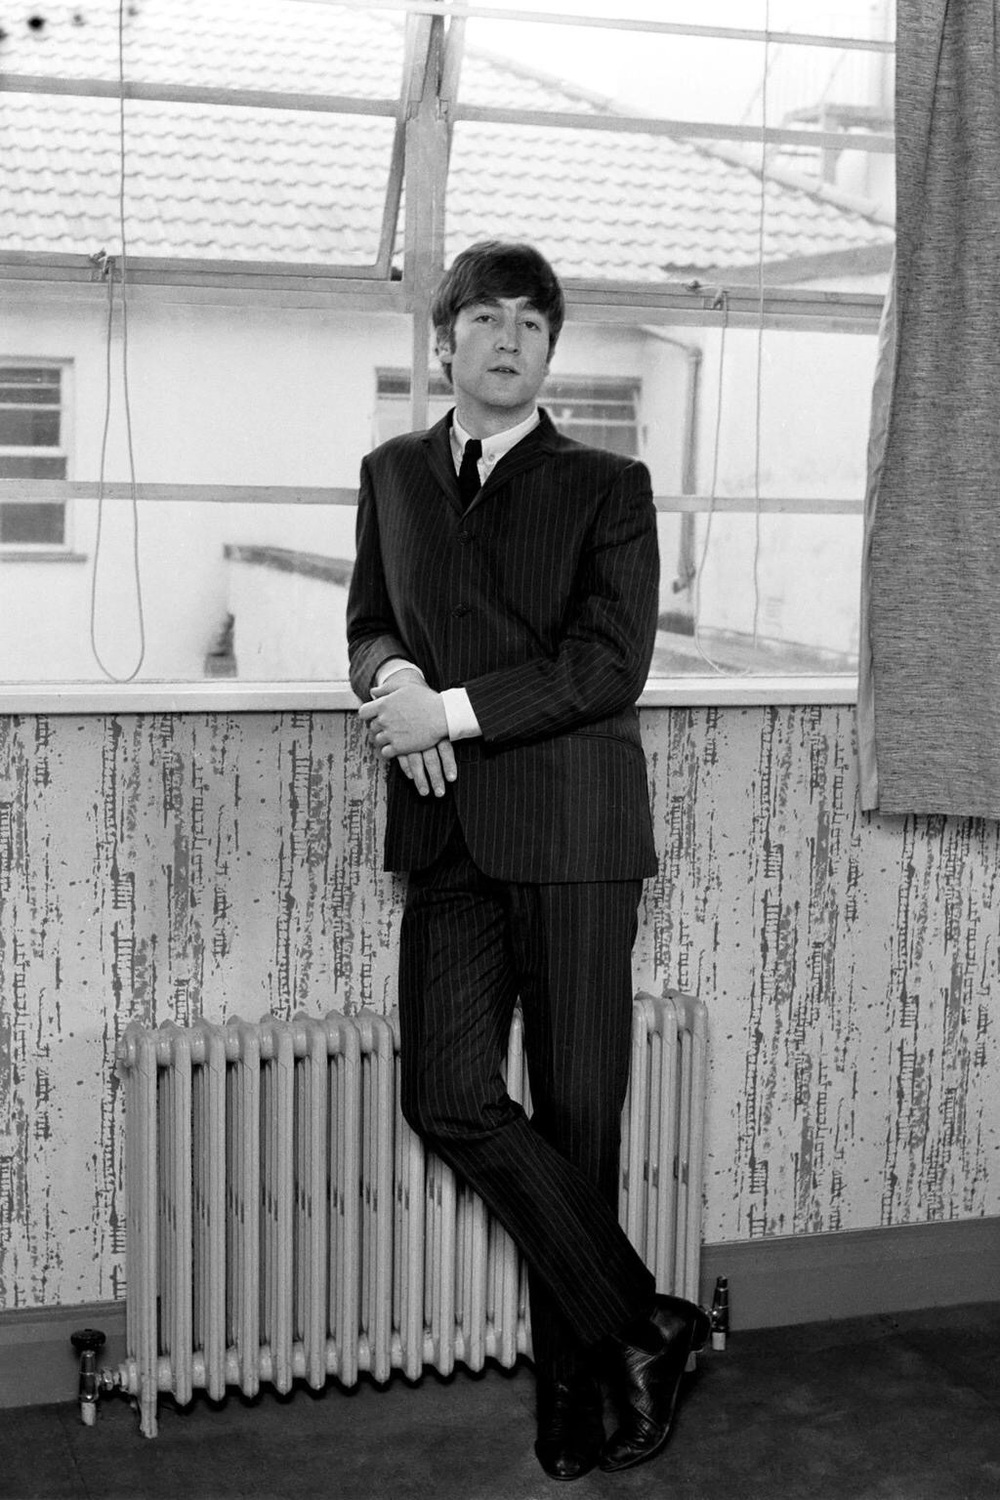 John Lennon photographed in 1963.